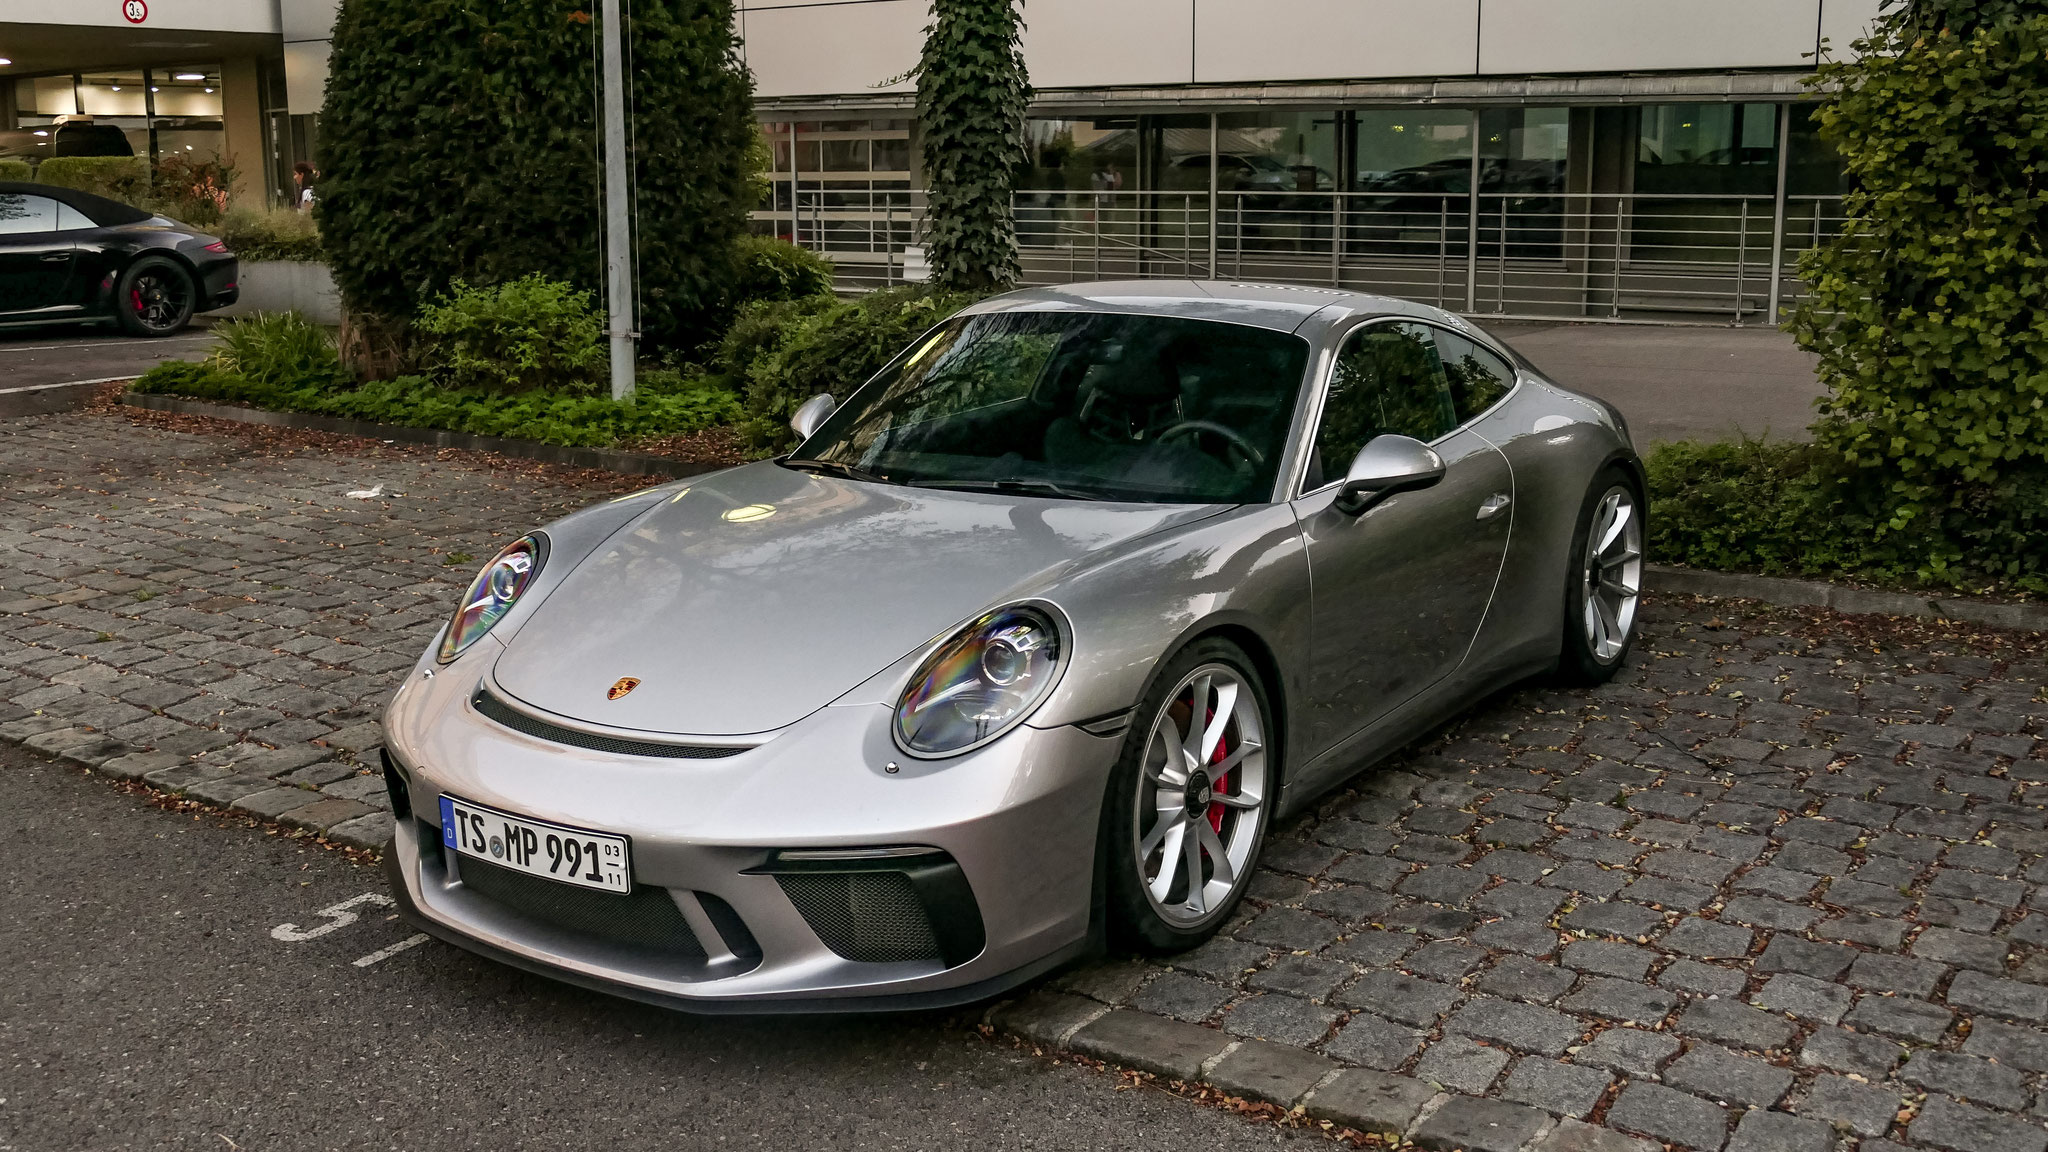 Porsche 991 GT3 Touring Package - TS-MP-991